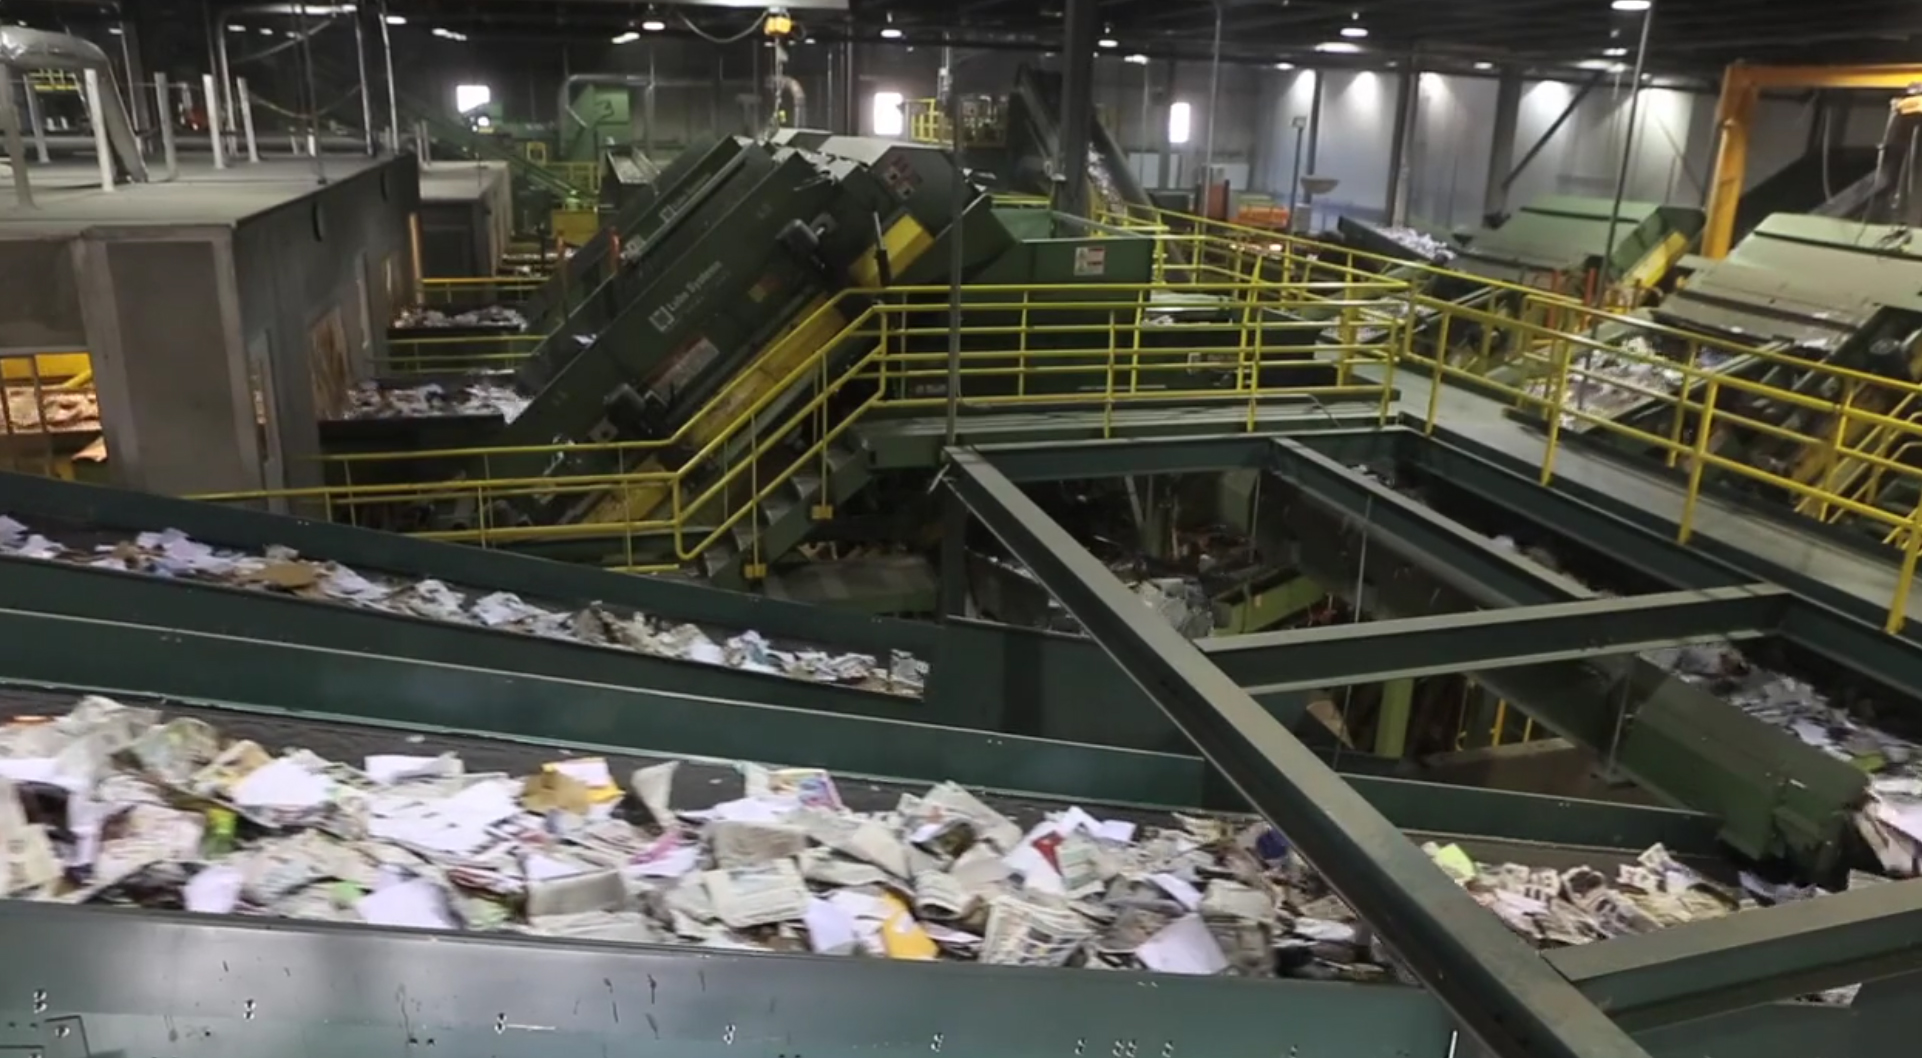 With the city of Minneapolis moving to single-sort recycling, we take a look at how our recyclables are processed at Waste Management's Materials Recovery Facility and RockTenn's recycling center.